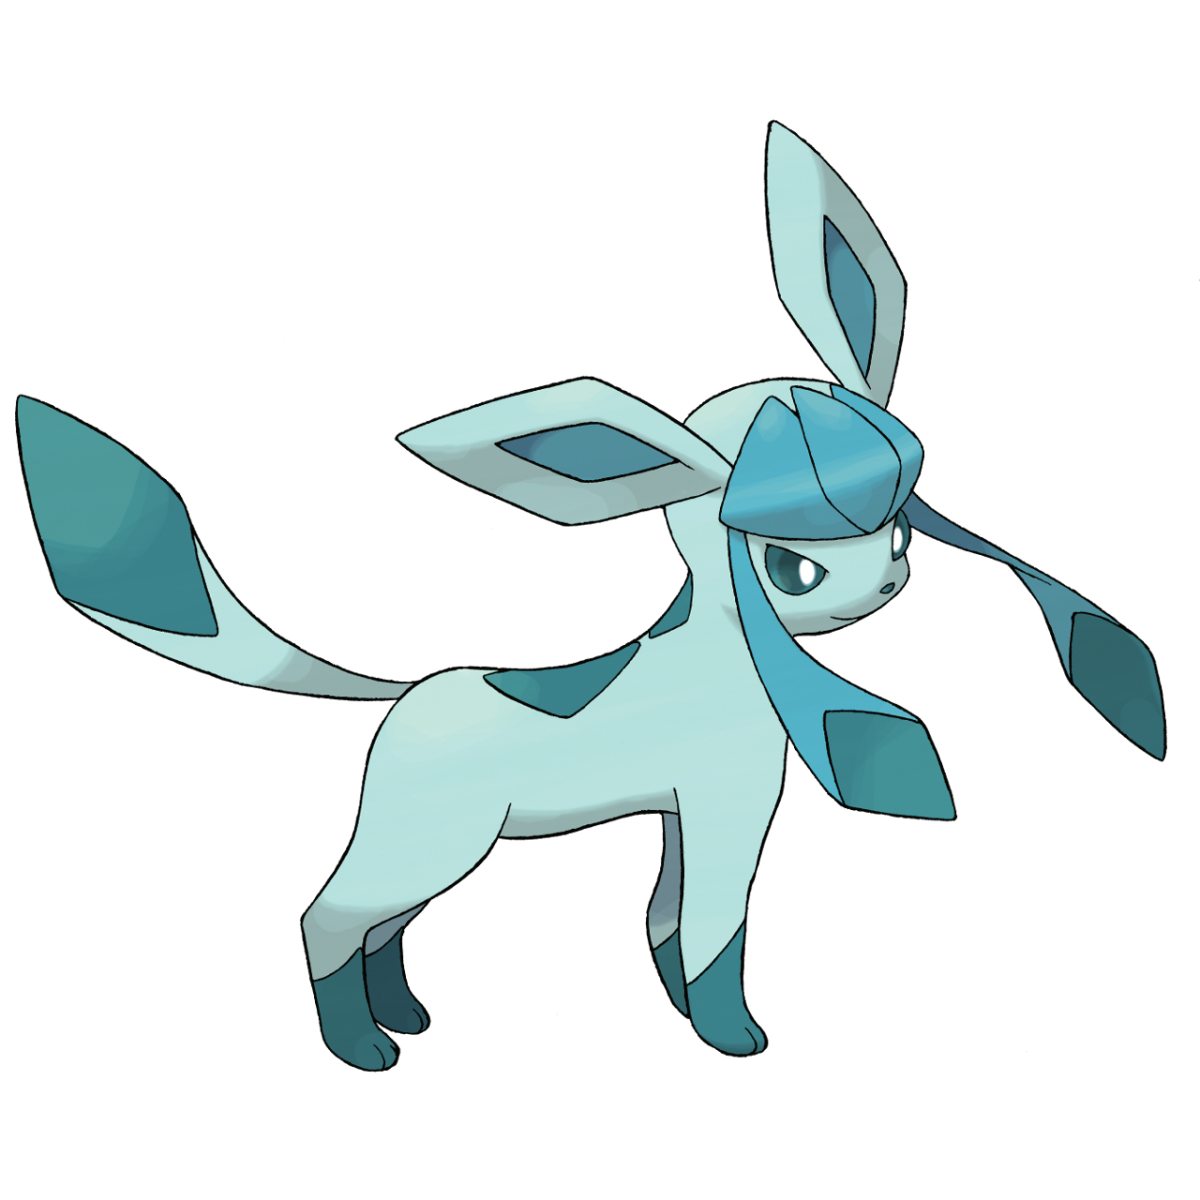 Pokemon X and Y Walkthrough, Pokemon Move Sets: Glaceon